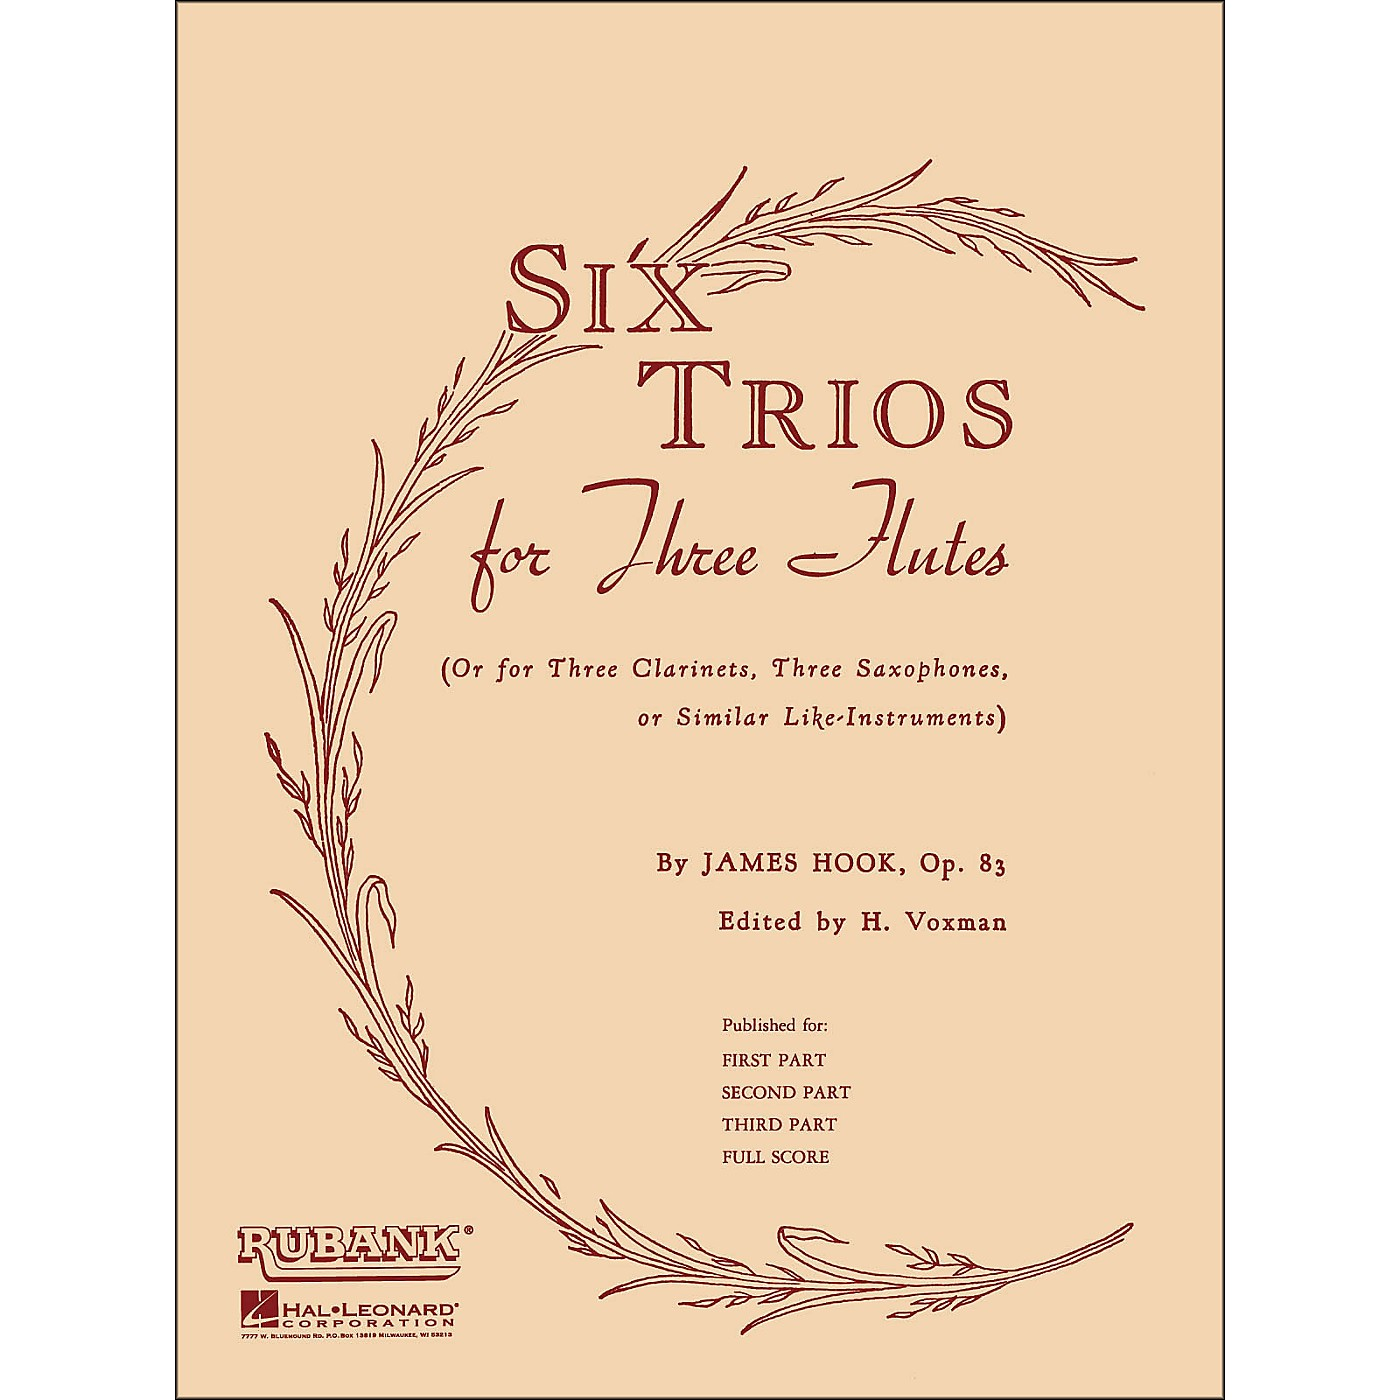 Hal Leonard Six Trios for Three Flutes Second Part thumbnail